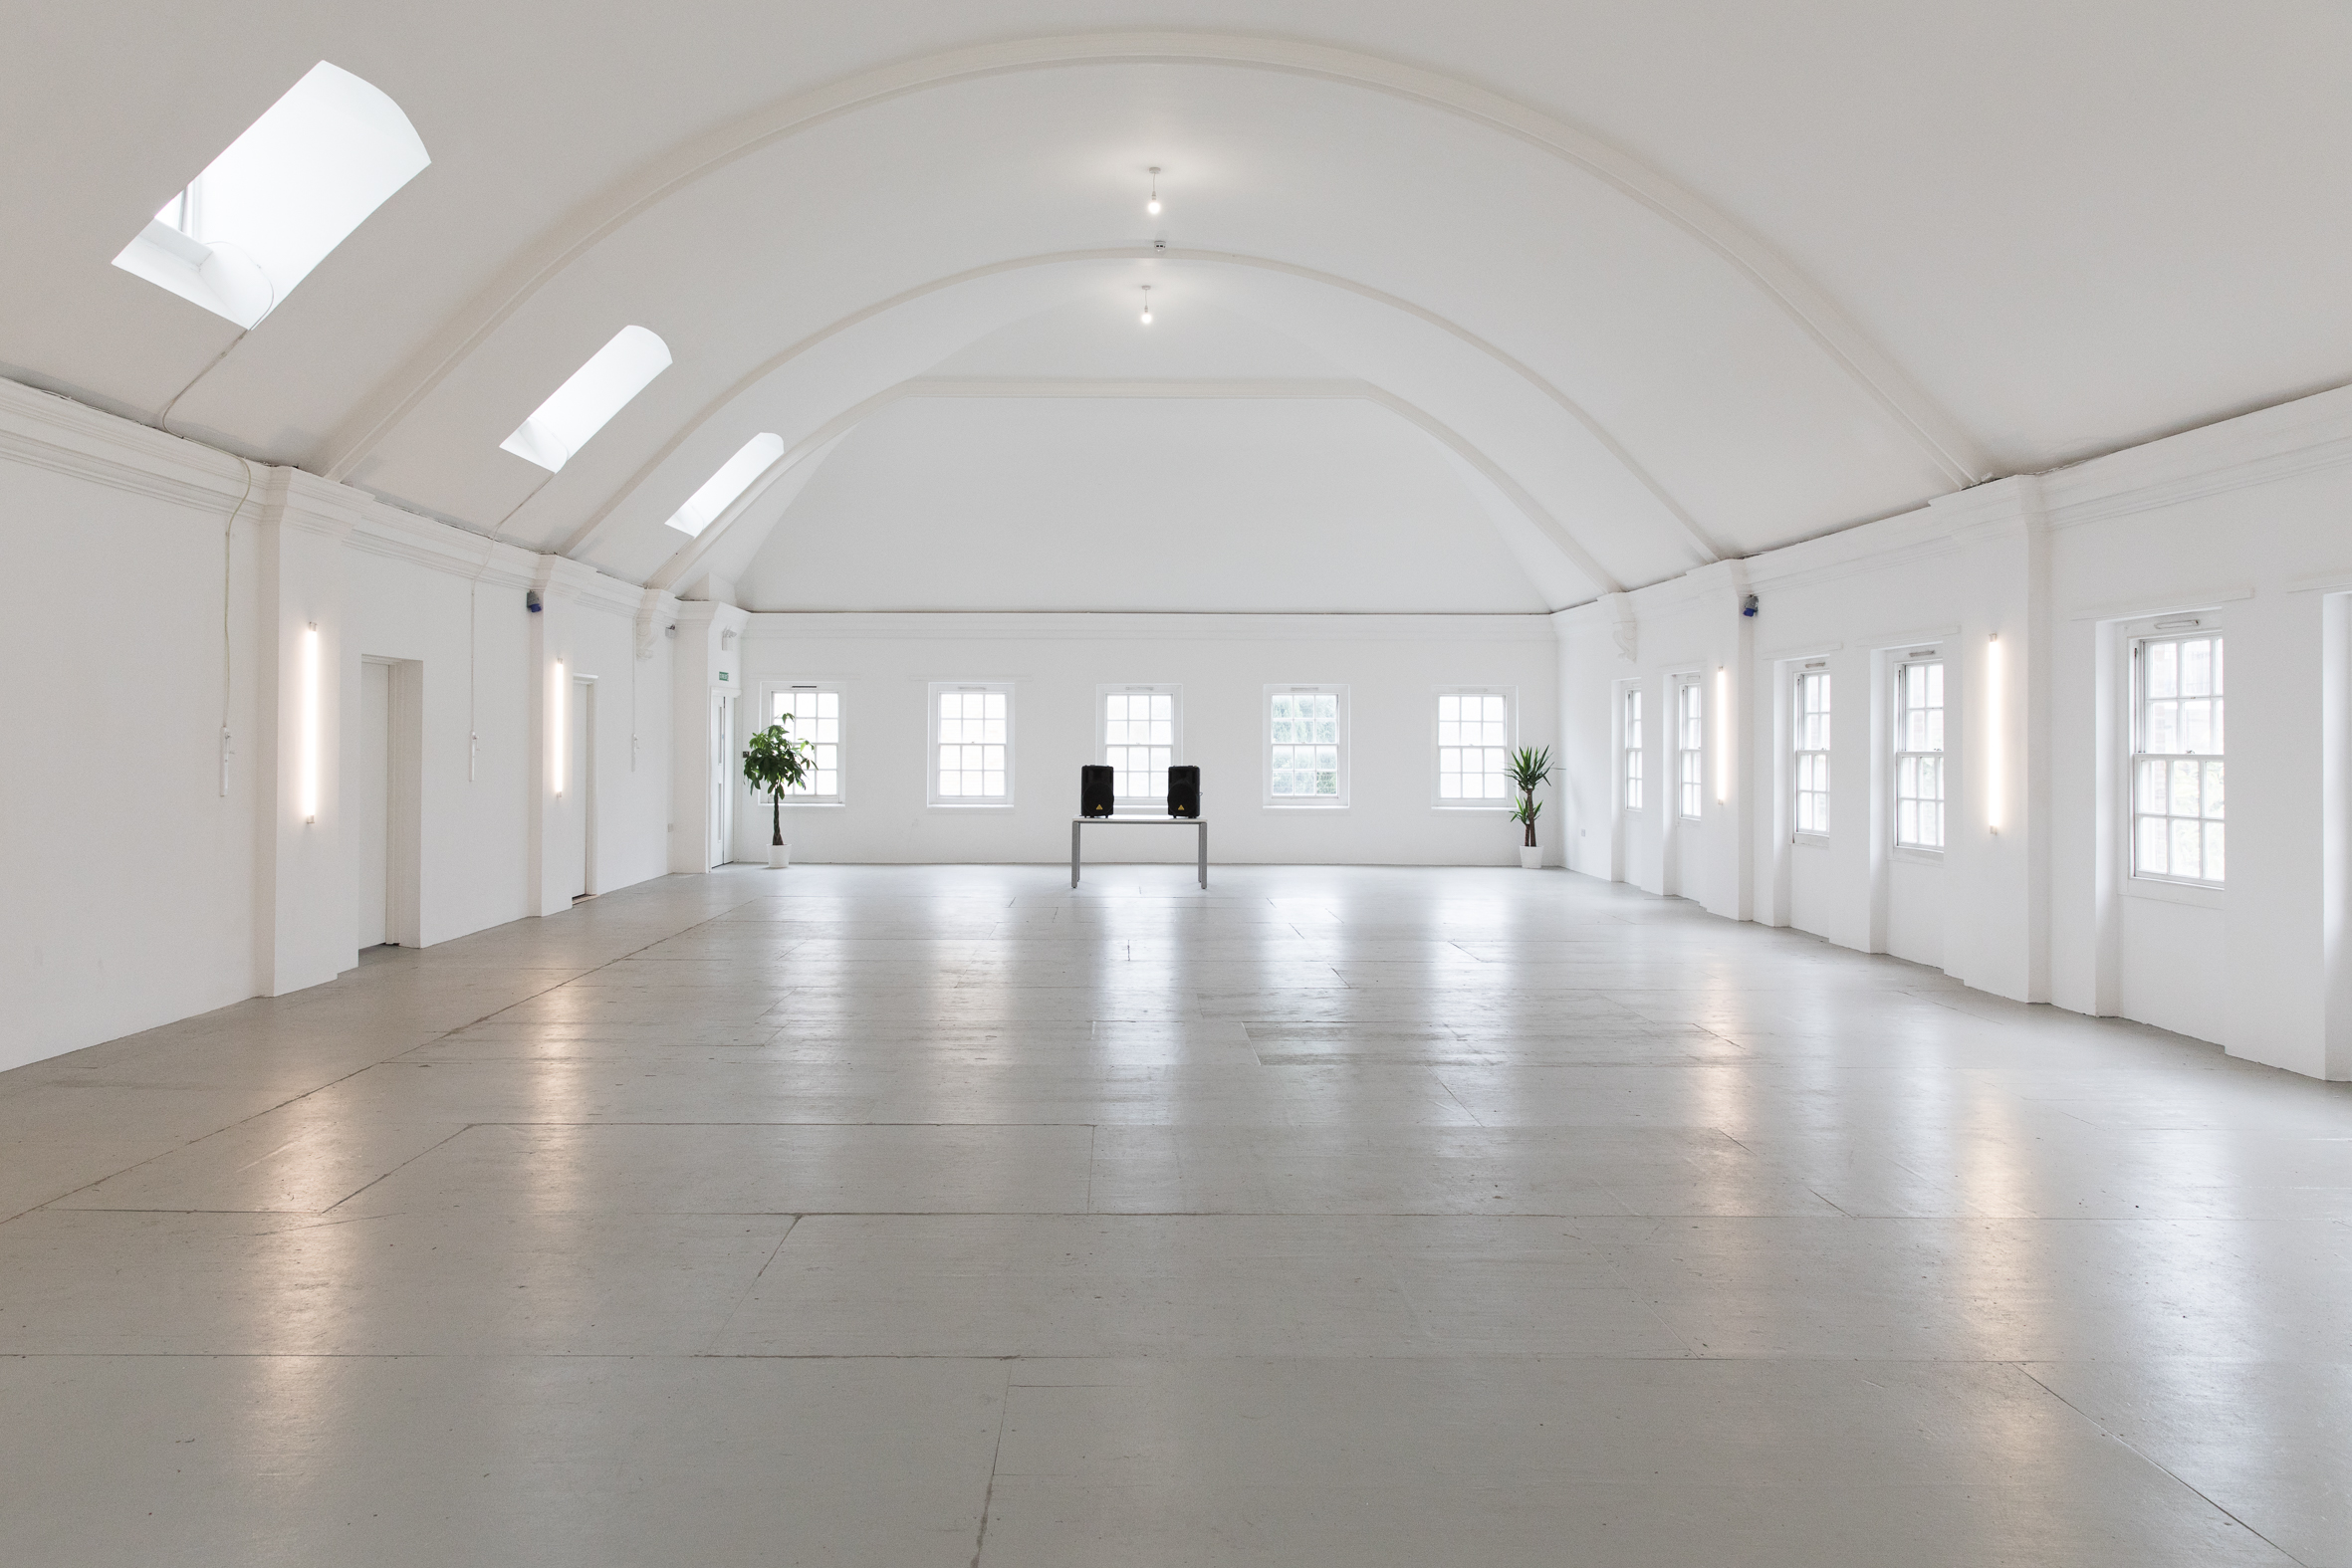 Fashion show venues for hire in London